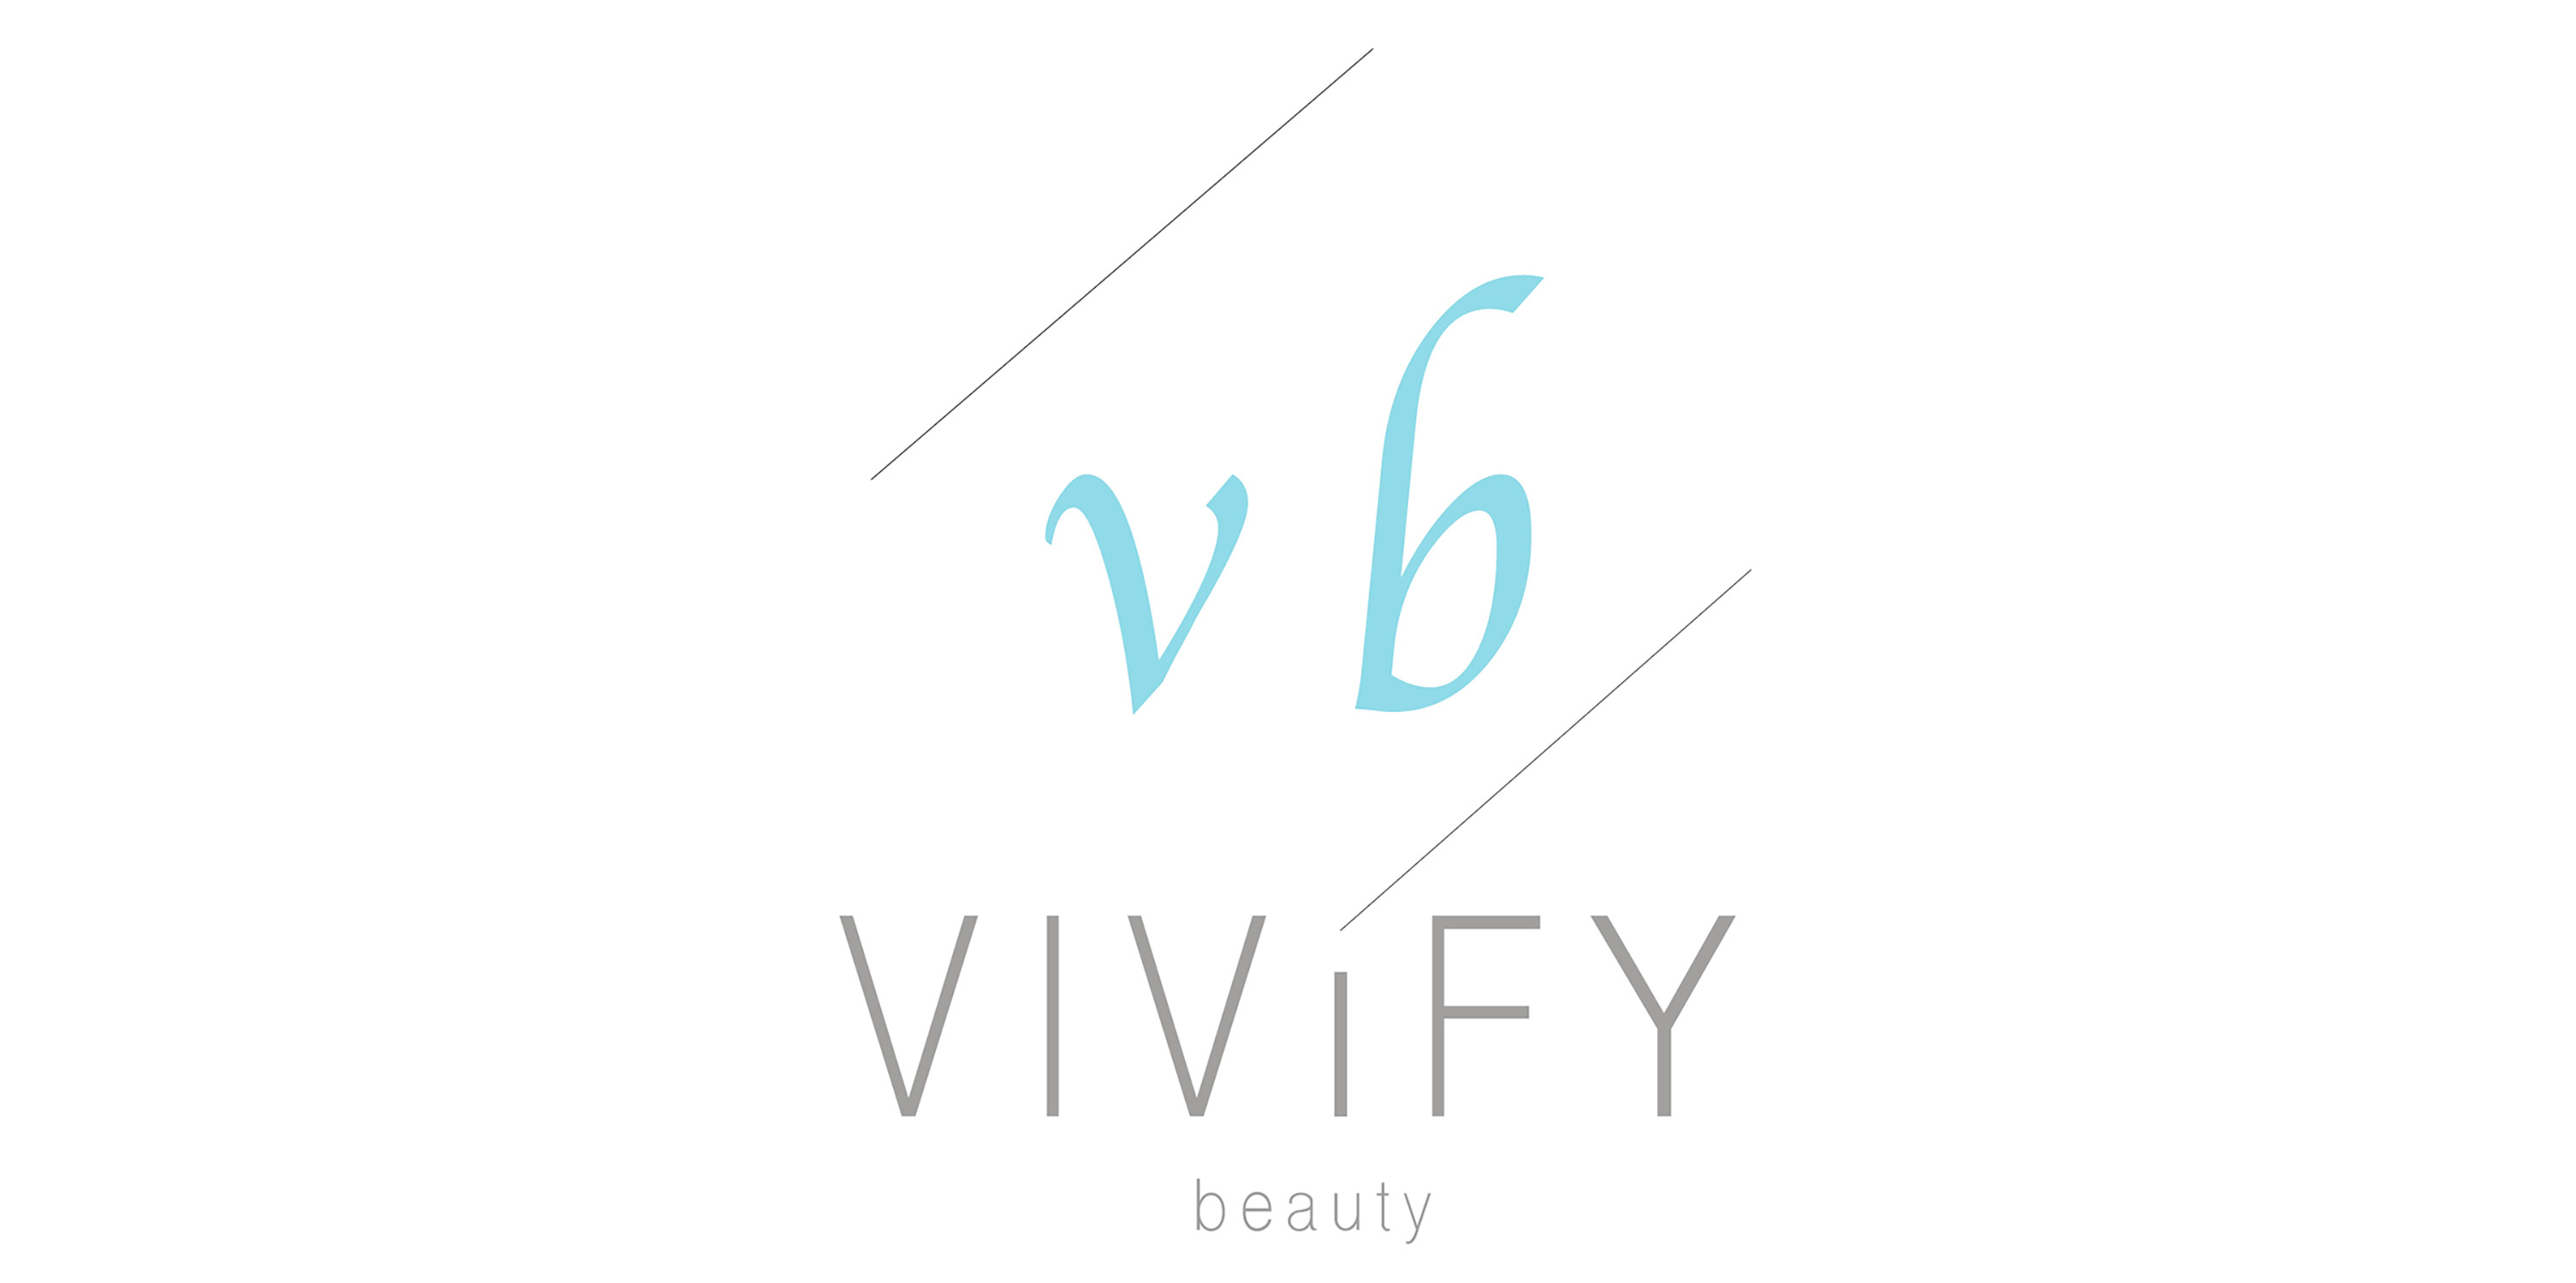 Vivify-Beauty-Logo-3000x1494.jpg